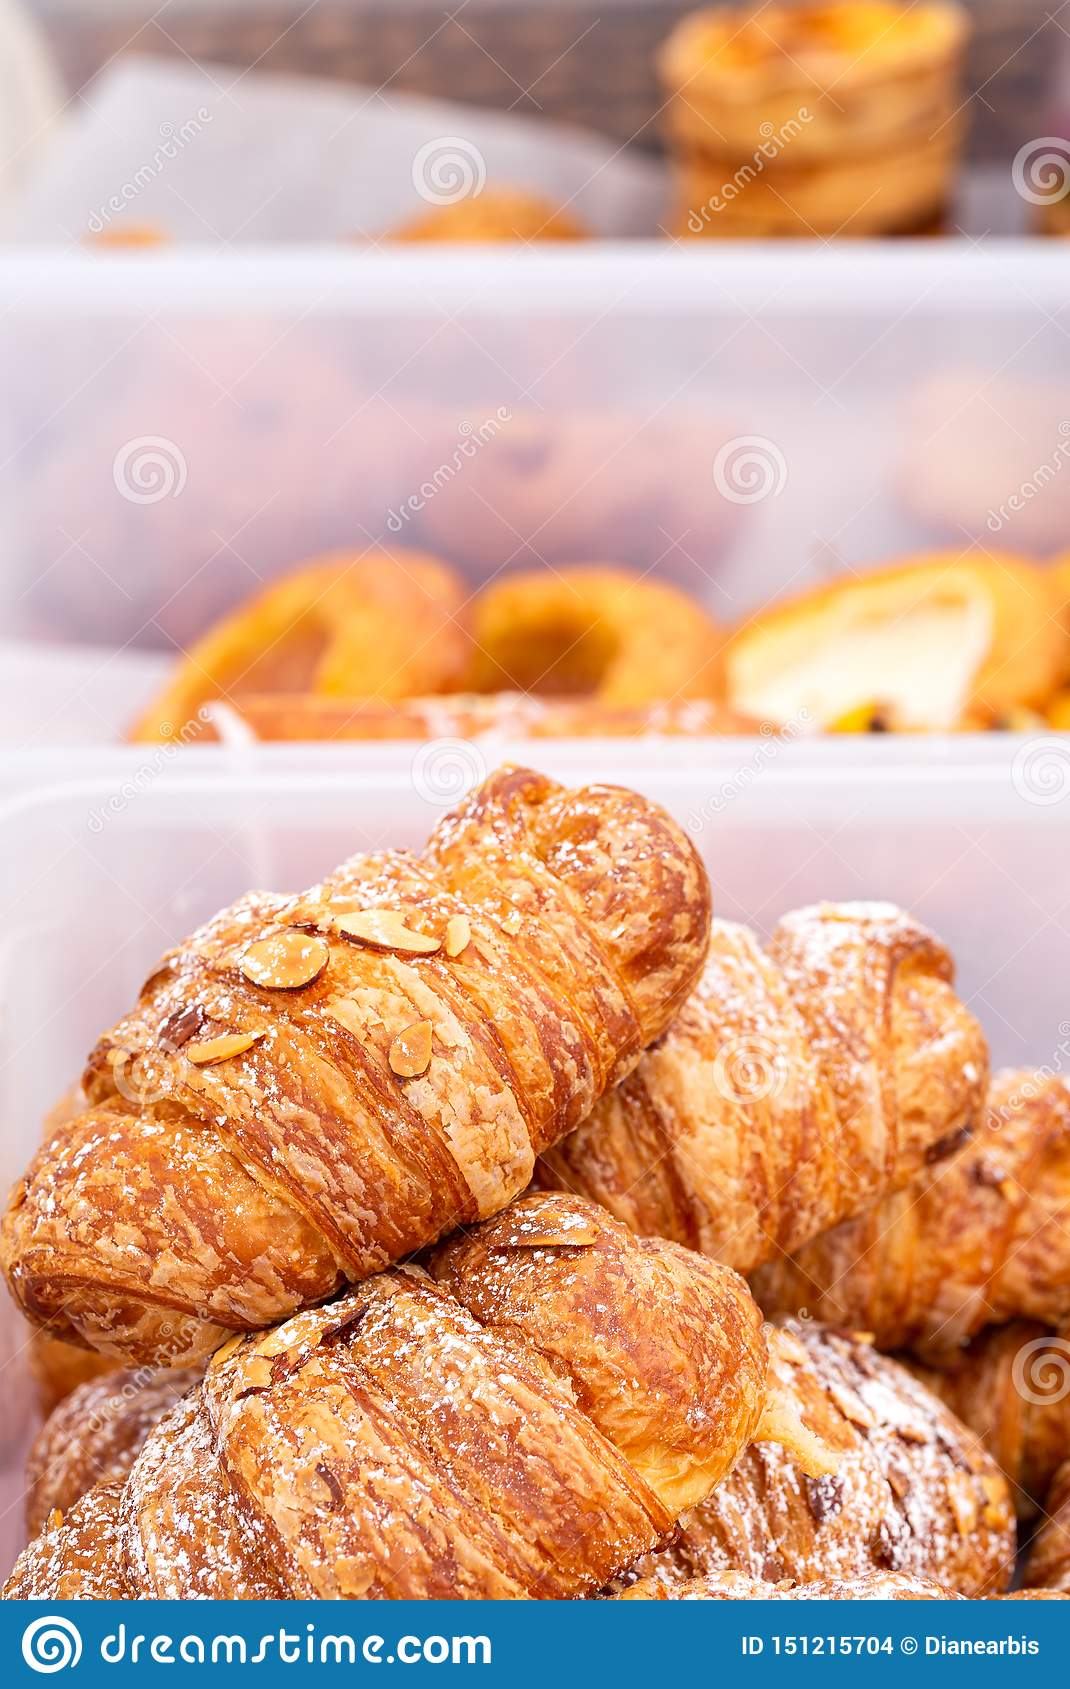 Almond croissant at an outdoor market